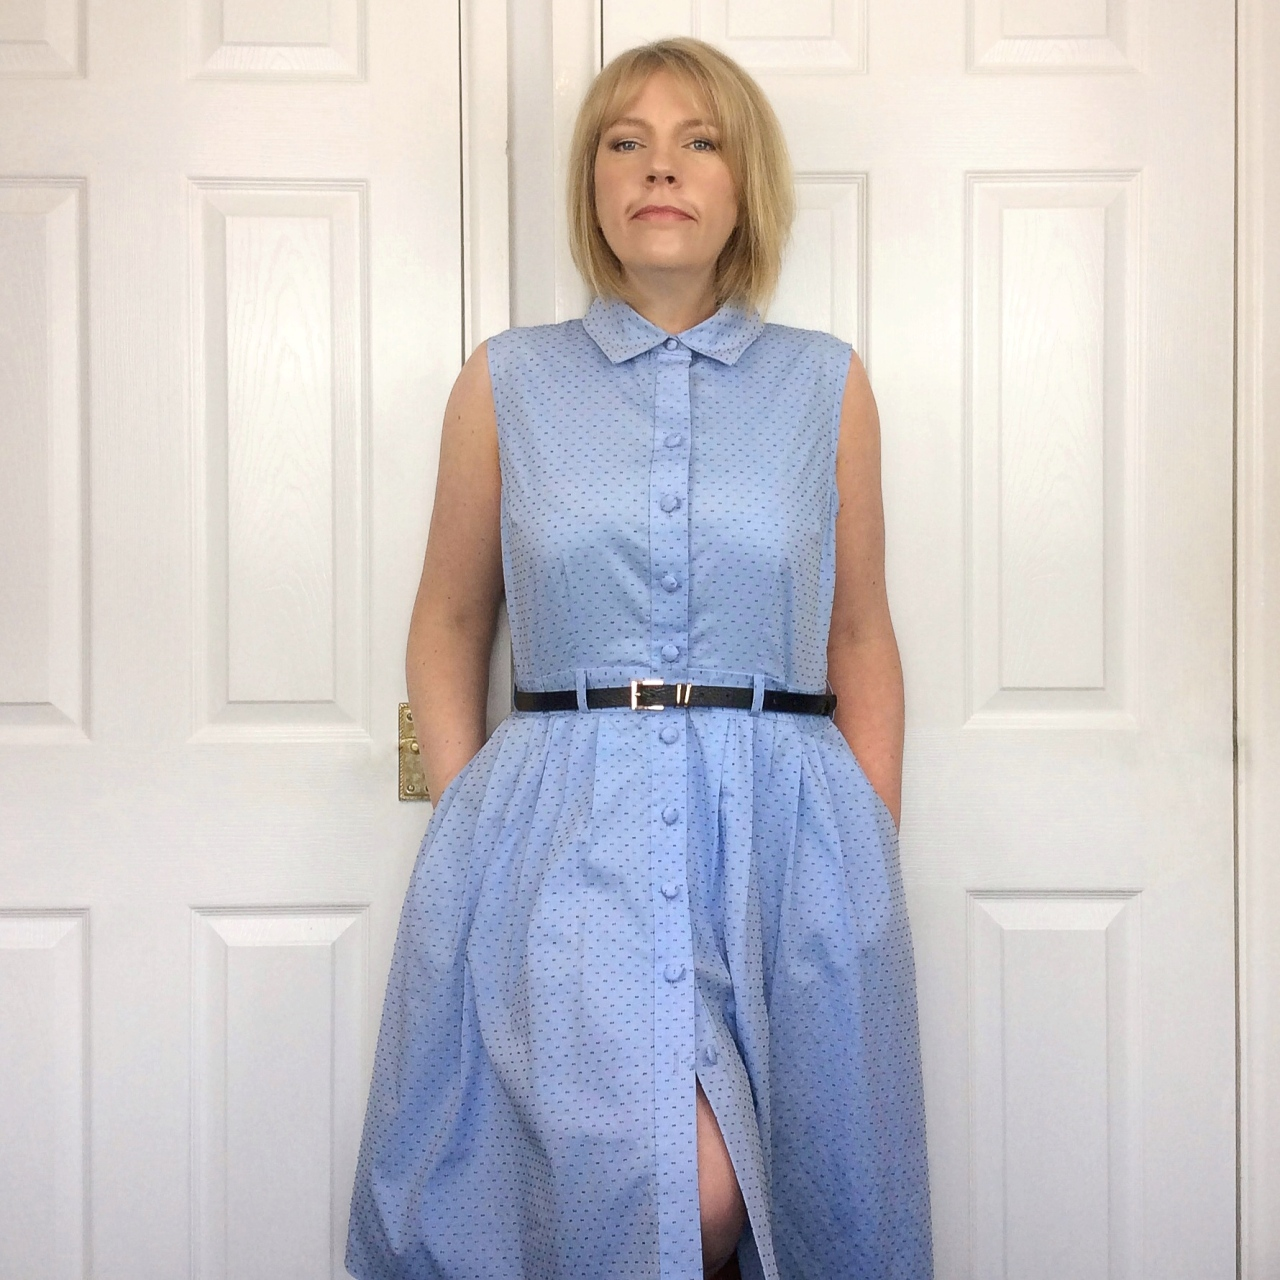 Sew together for summer shirtdress